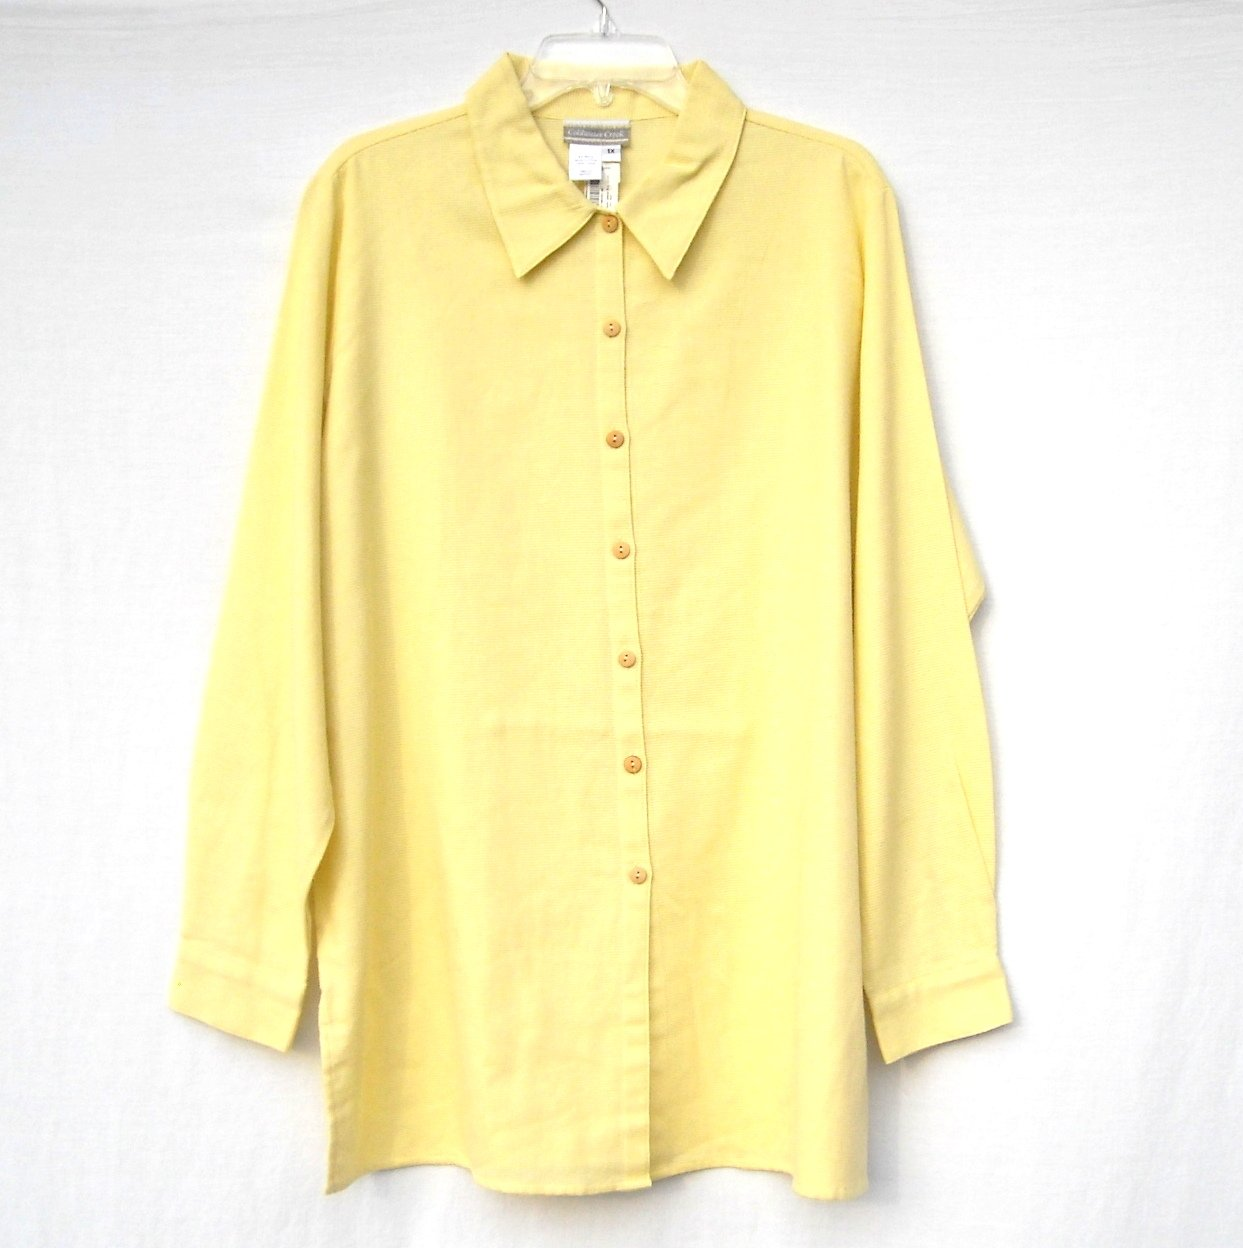 Coldwater Creek Womens Open Weave Cotton Shirt Size 1X